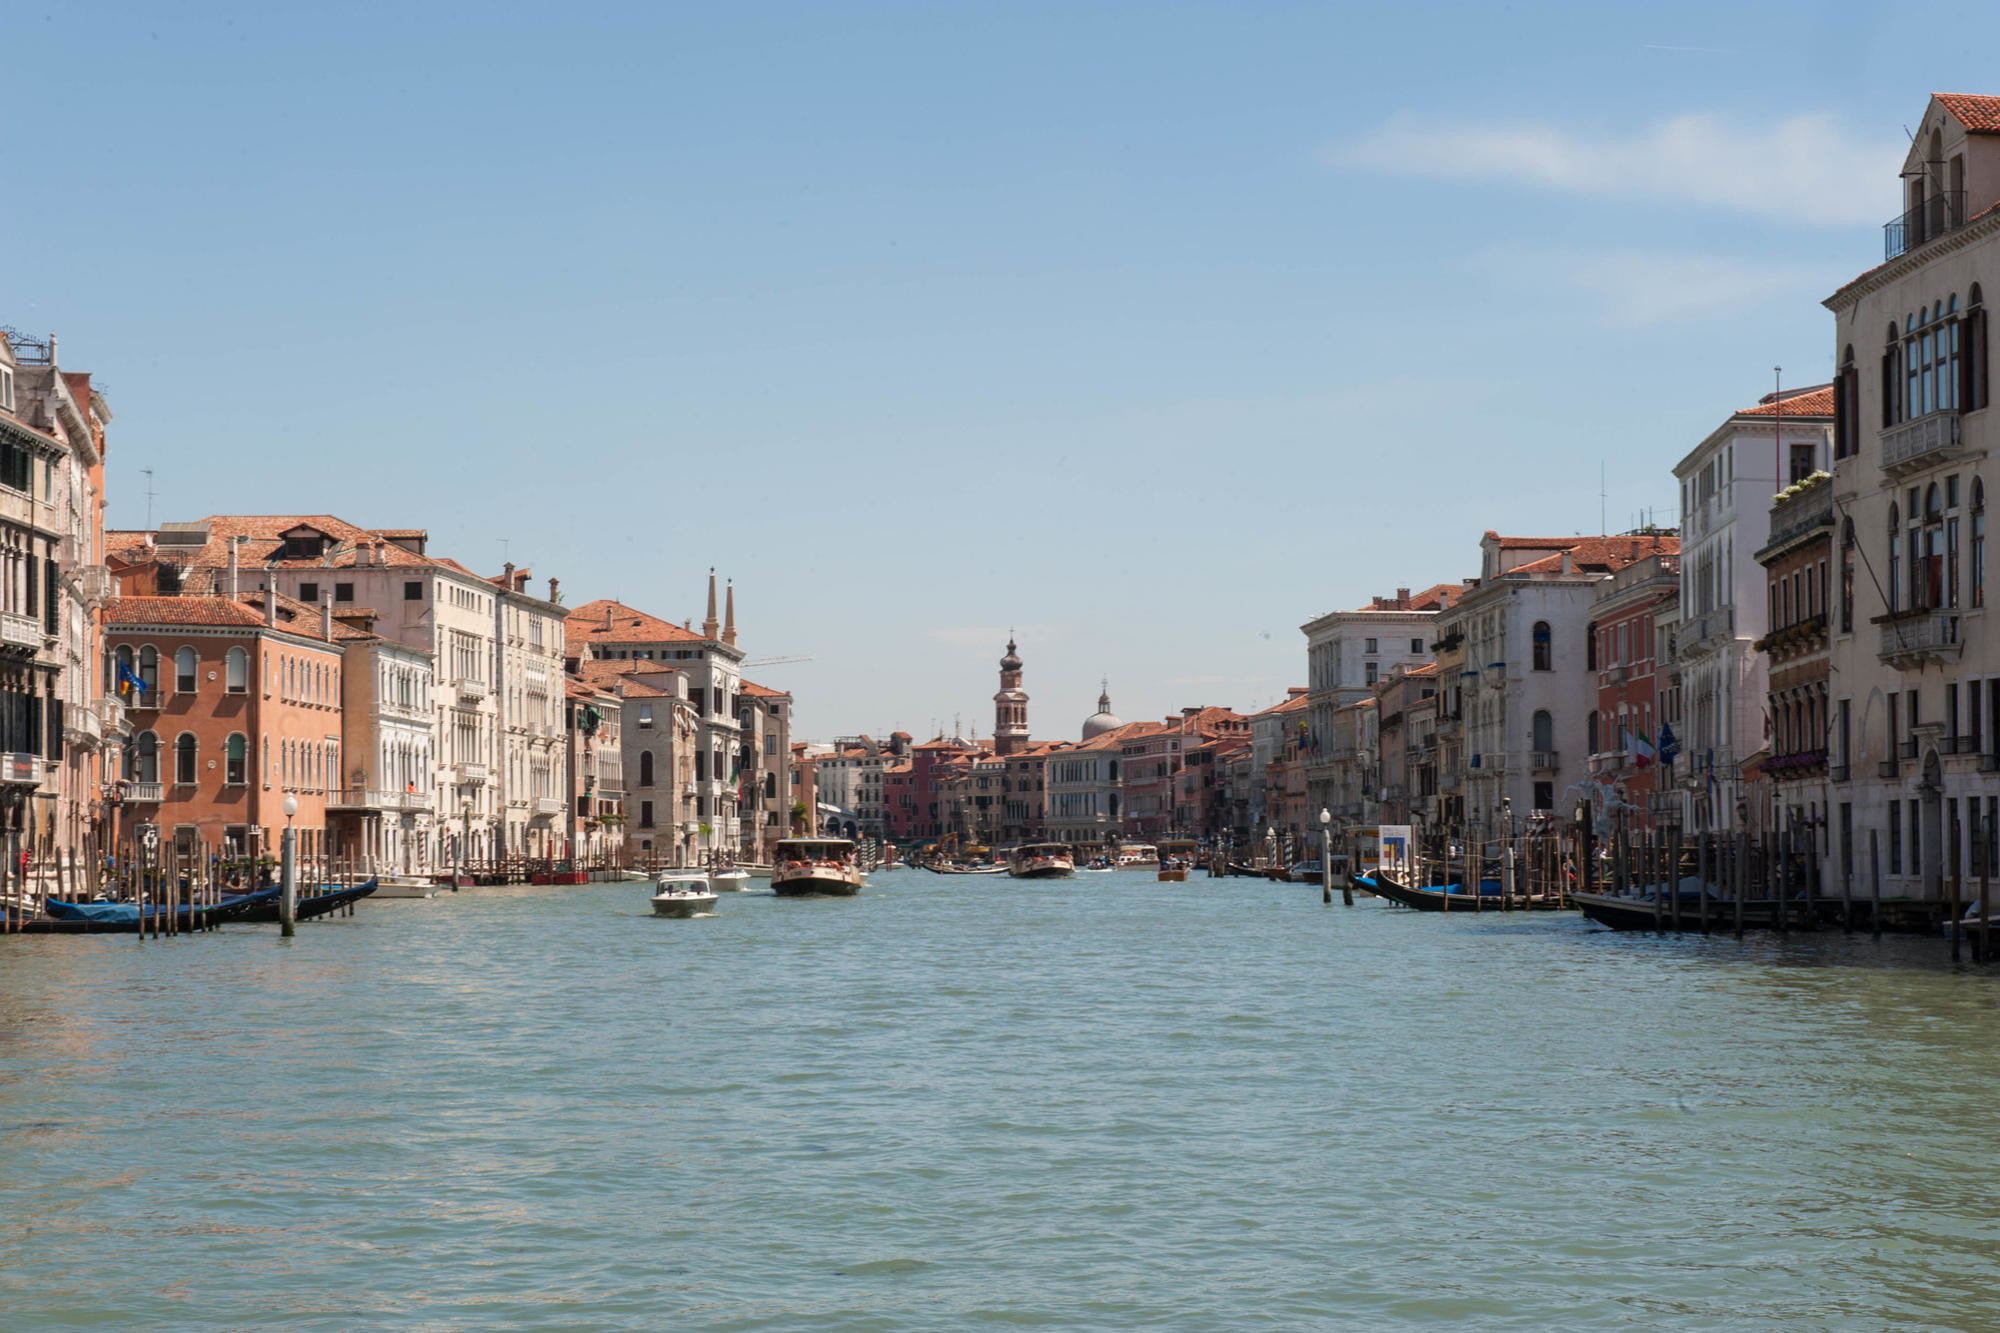 Gondolas, boats, and vaporetti on Venice's Grand Canal.